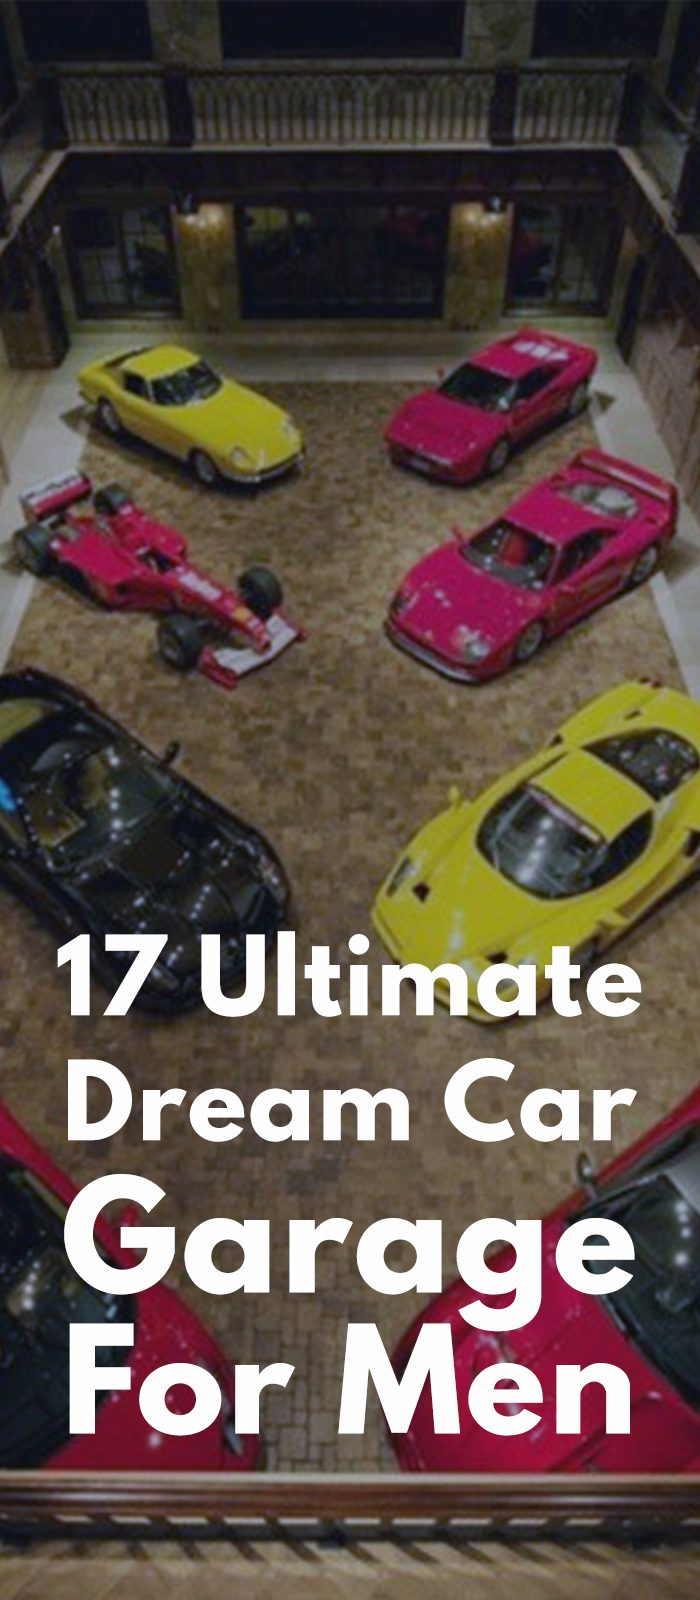 17 Ultimate Dream Car Garage For Men!